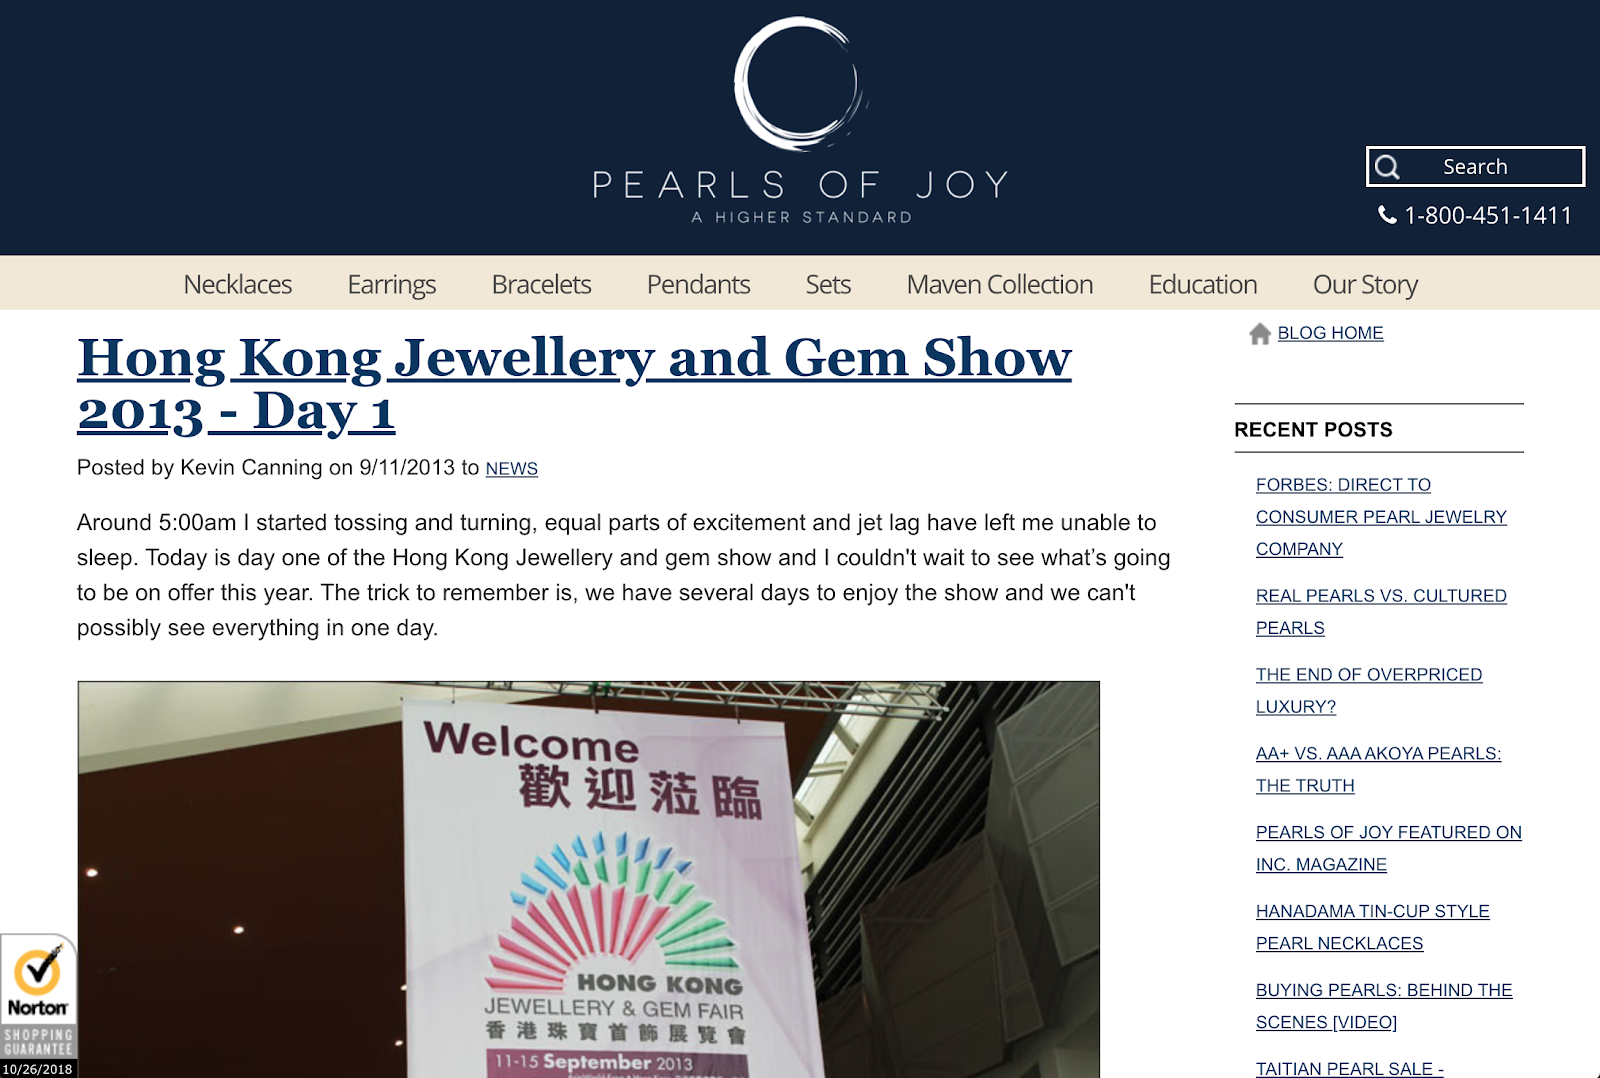 pearls-of-joy-starting-the-world-s-fastest-pearl-jewelry-company